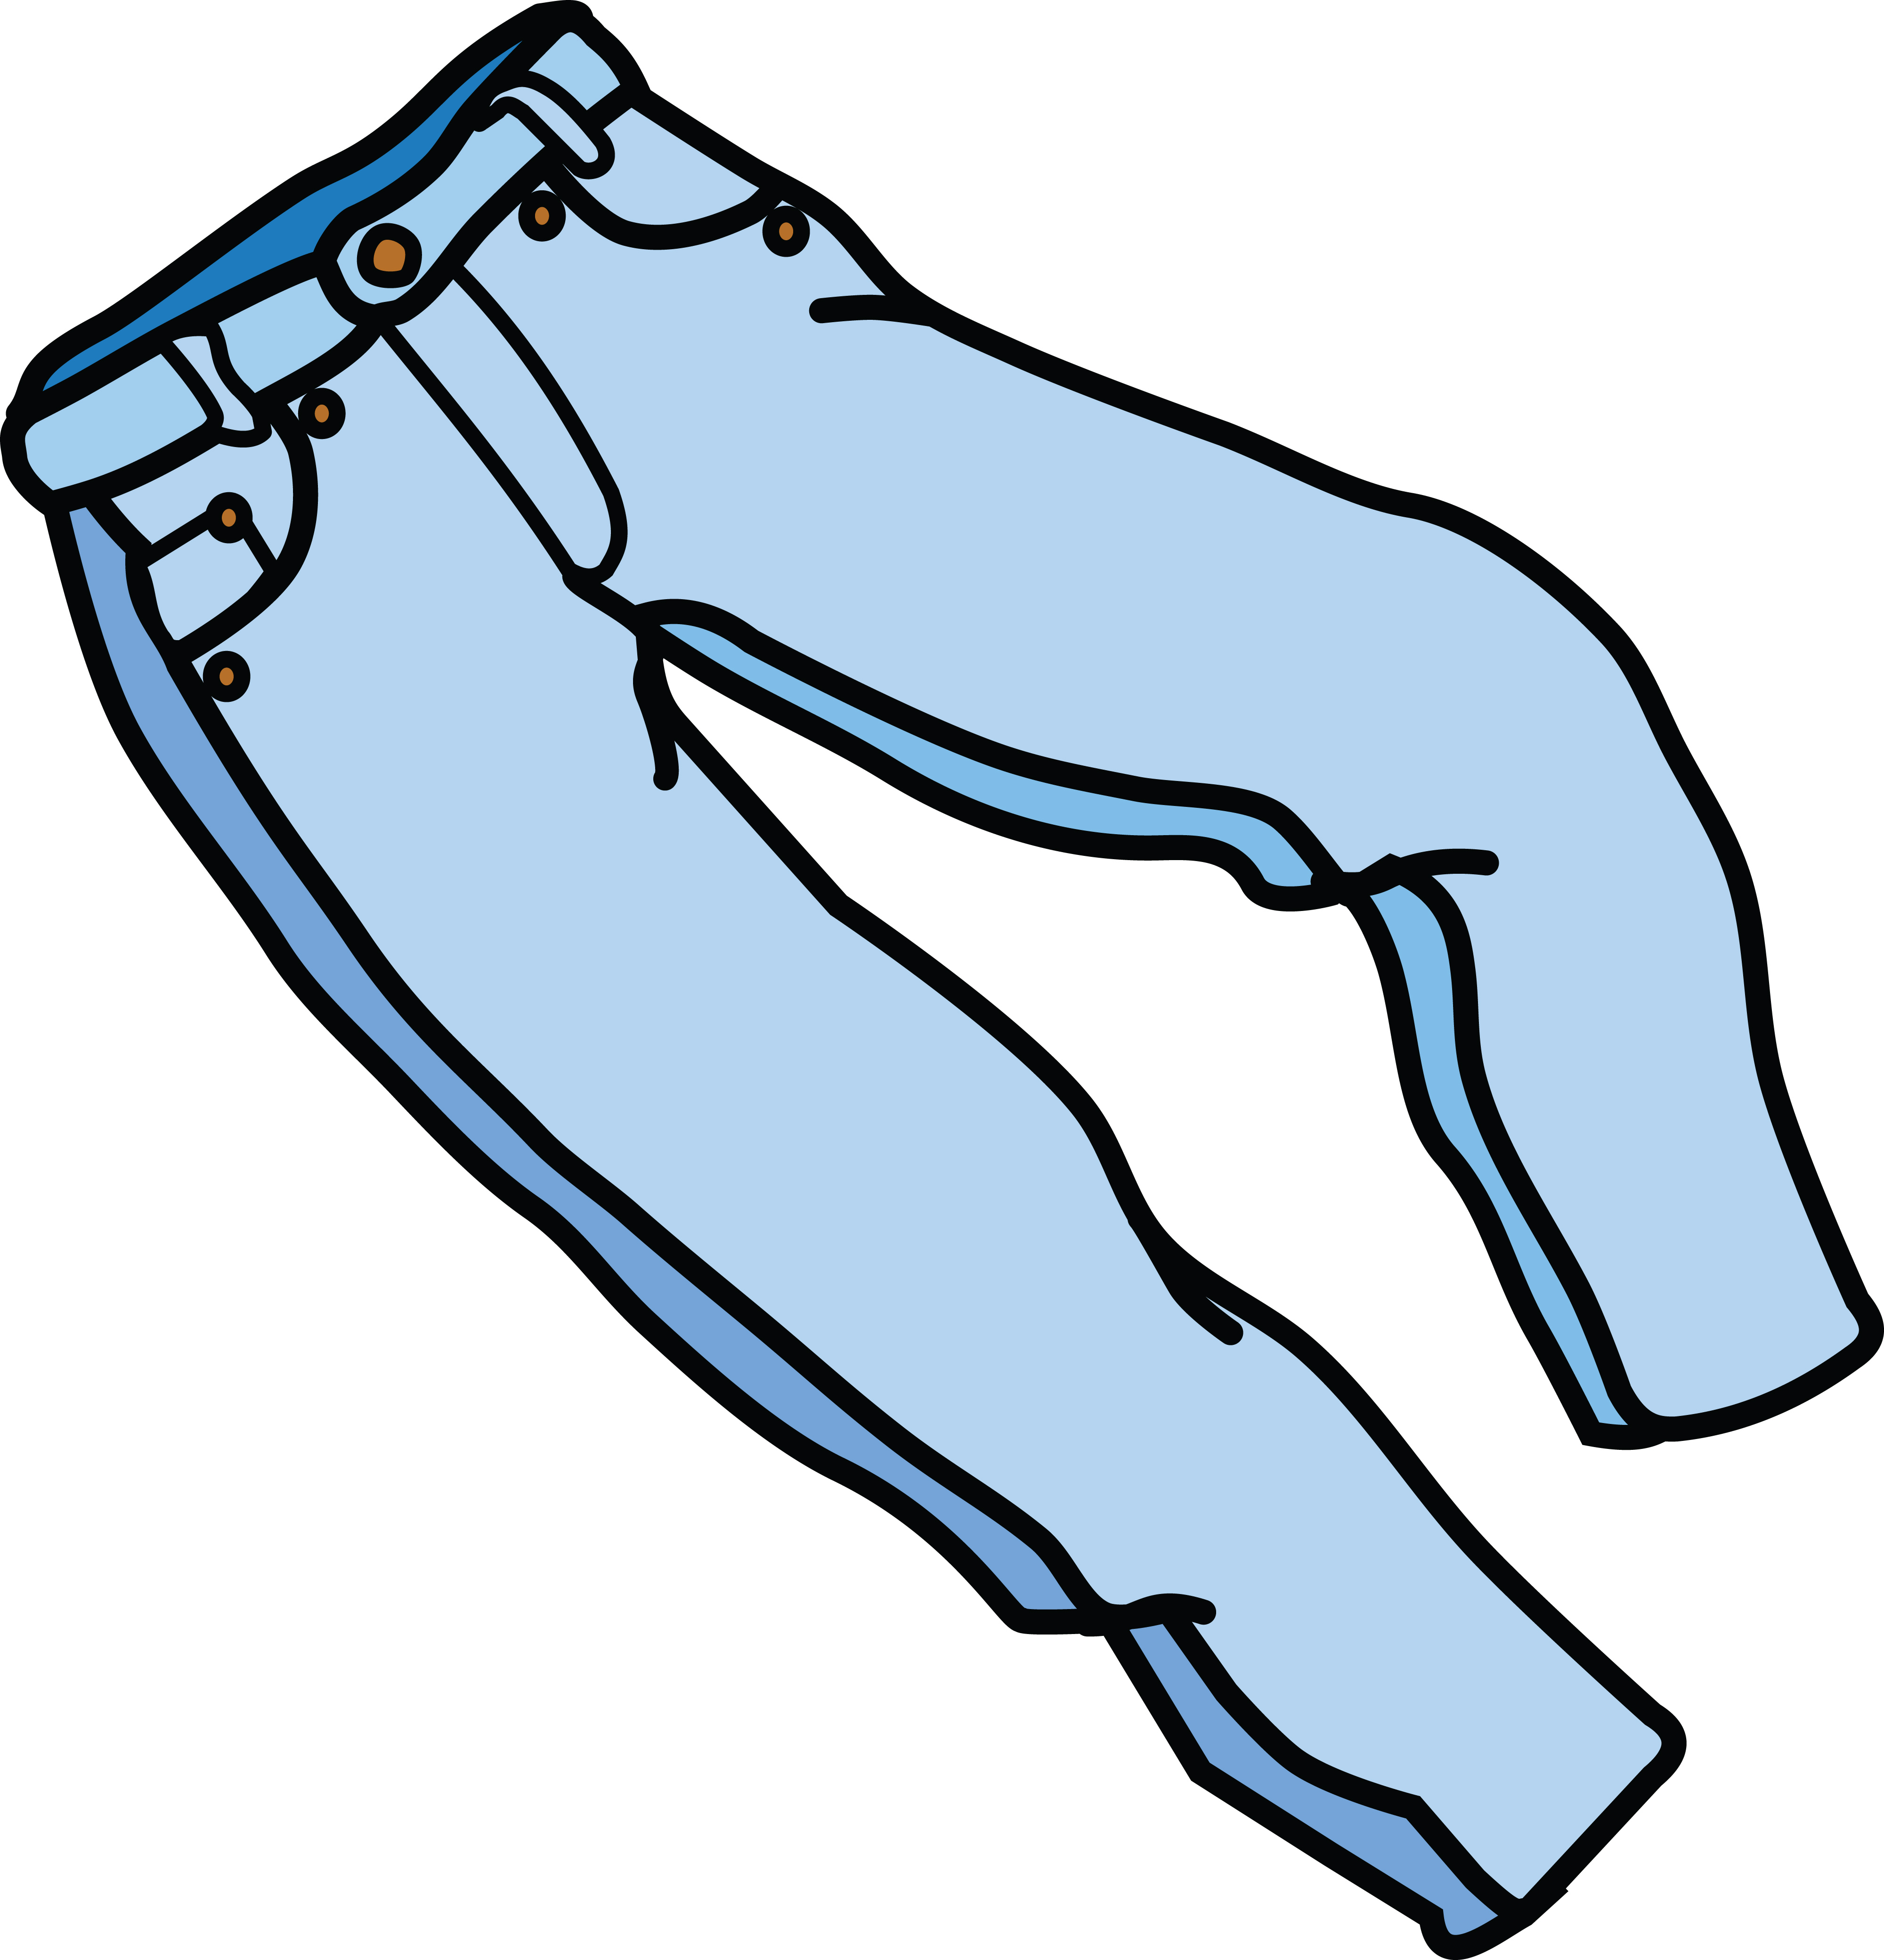 Free Clipart Of A pair of jeans.